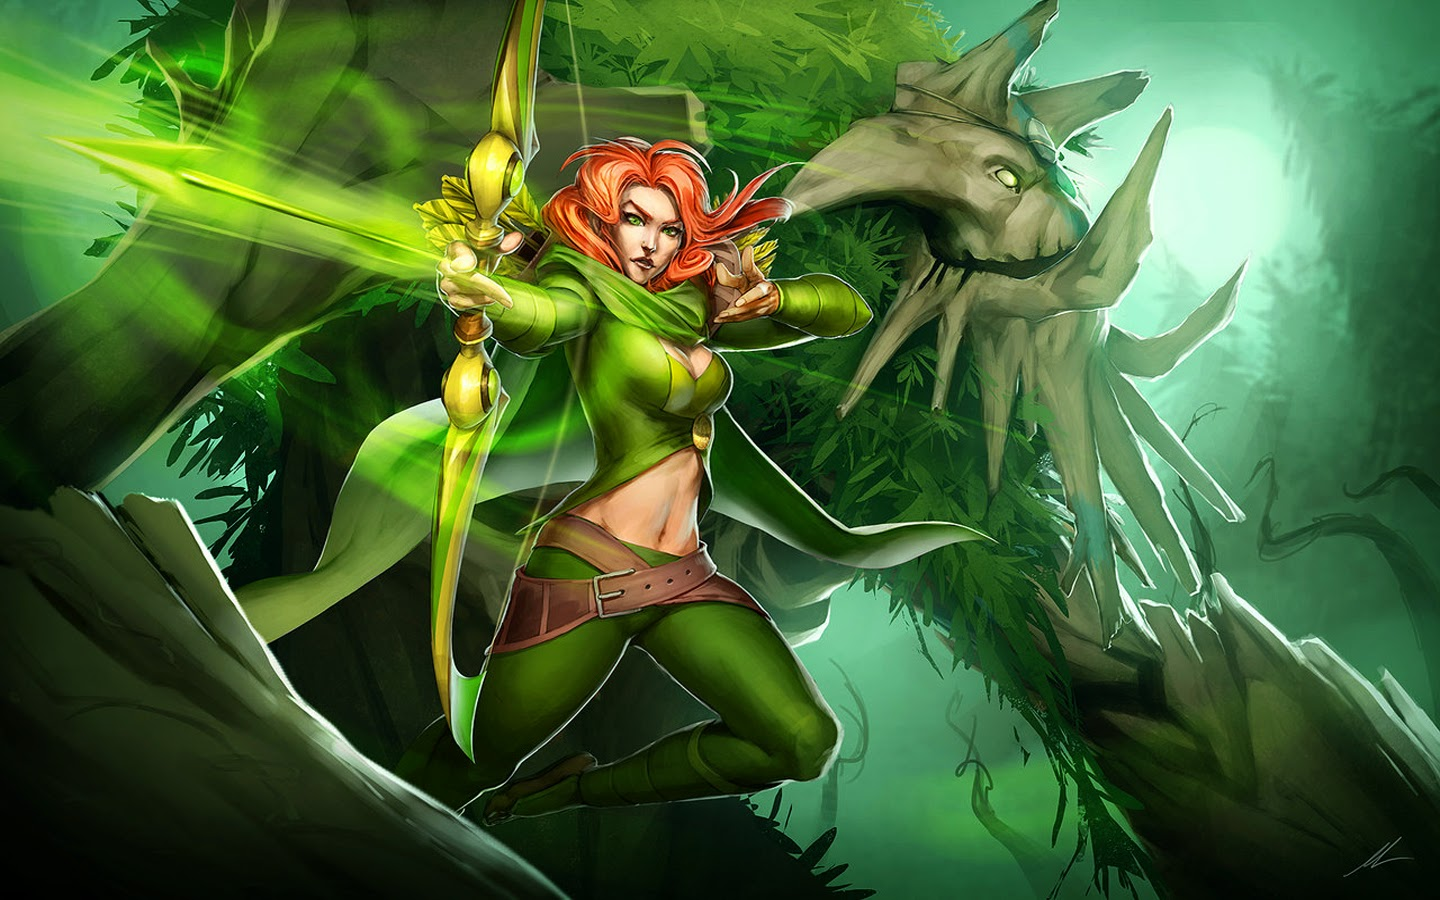 Dota2 : Treant Protector Wallpapers hd